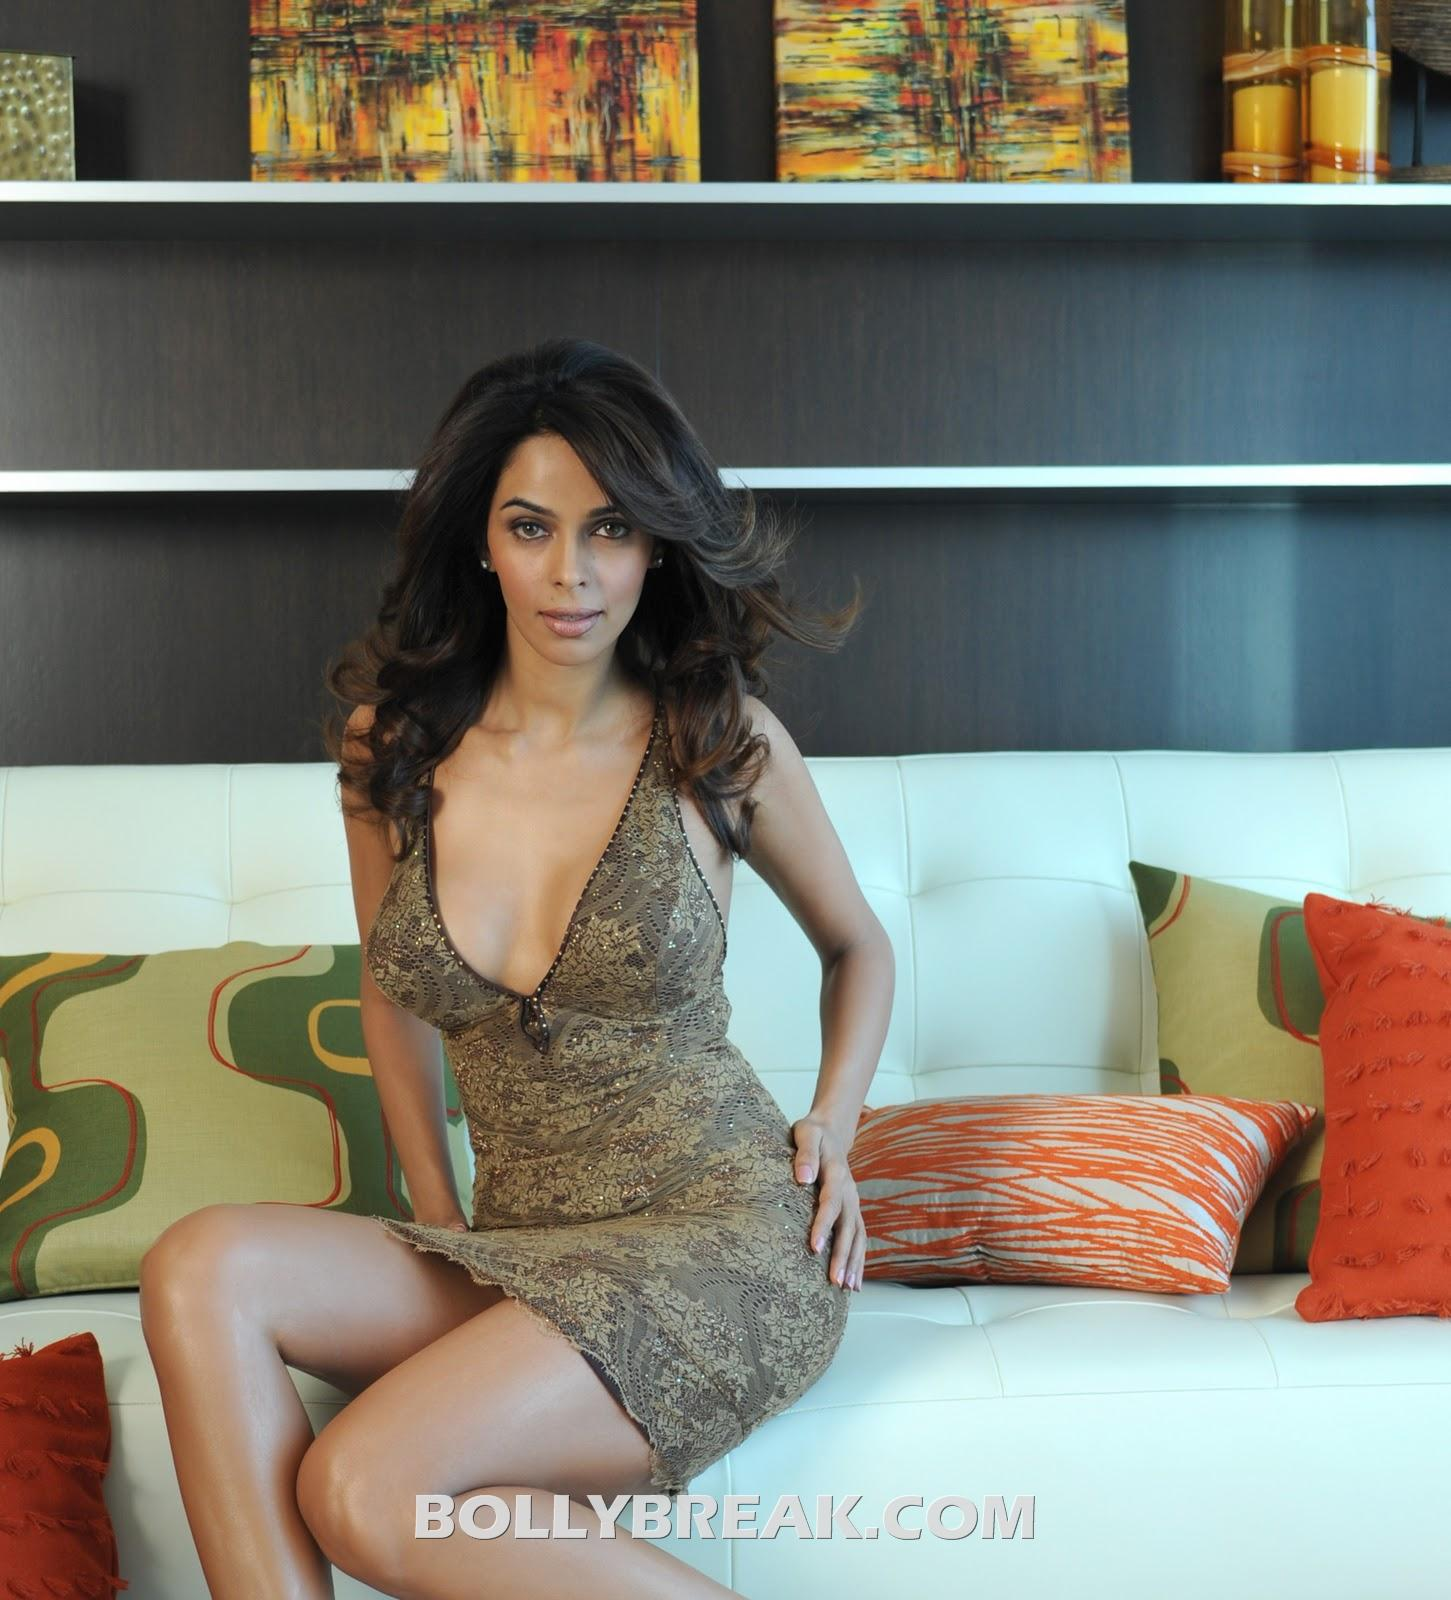 Mallika Sherawat sitting on sofa in hot brown dress - Mallika Sherawat Hot Wallpaper on Sofa